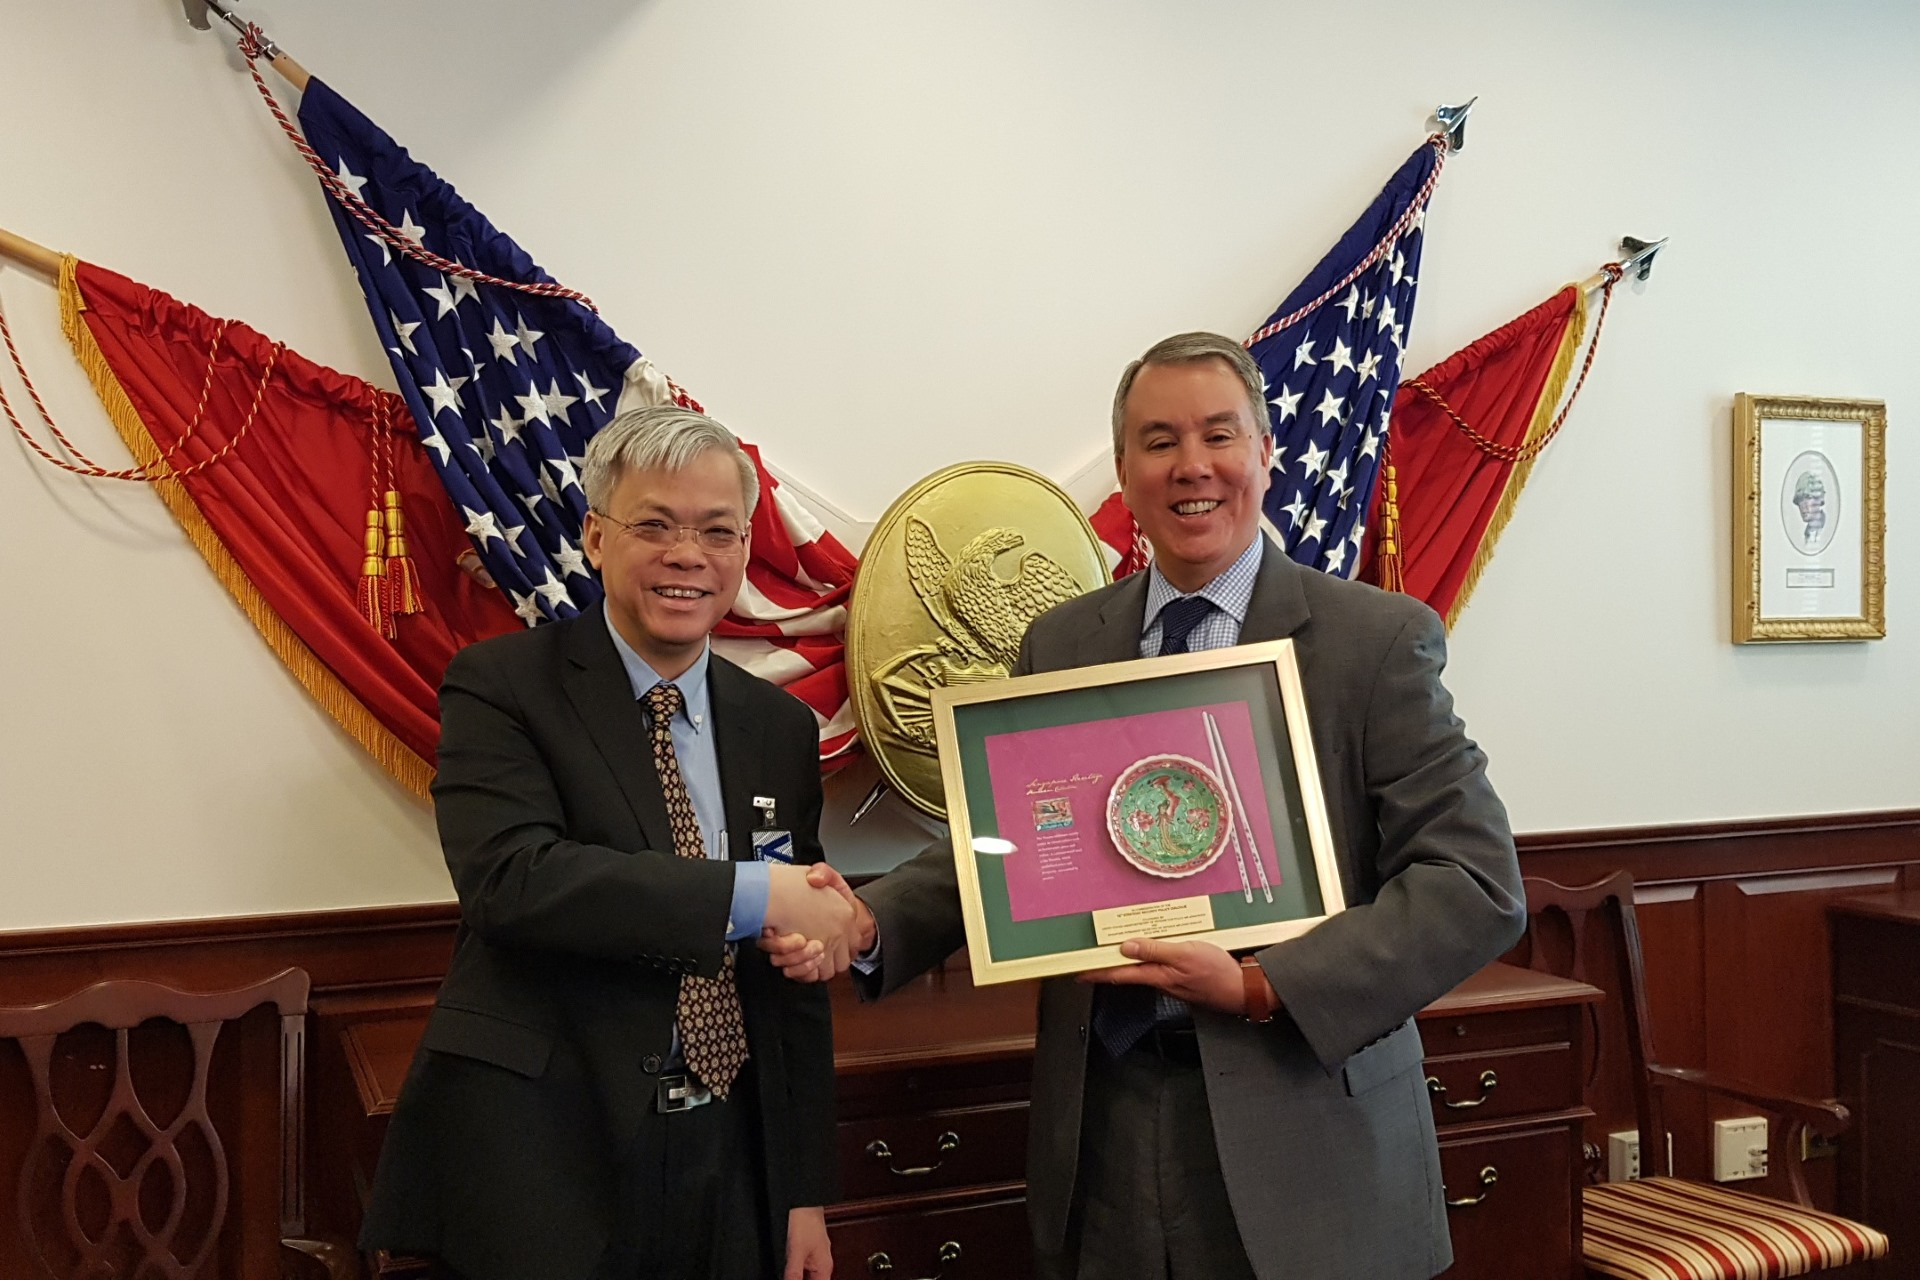 Permanent Secretary for Defence Mr Chan Yeng Kit (left) and United States Under Secretary of Defense for Policy Mr John Rood (right) meeting at the Pentagon in Washington D.C. during the 10th SG-US Strategic Security Policy Dialogue (SSPD).